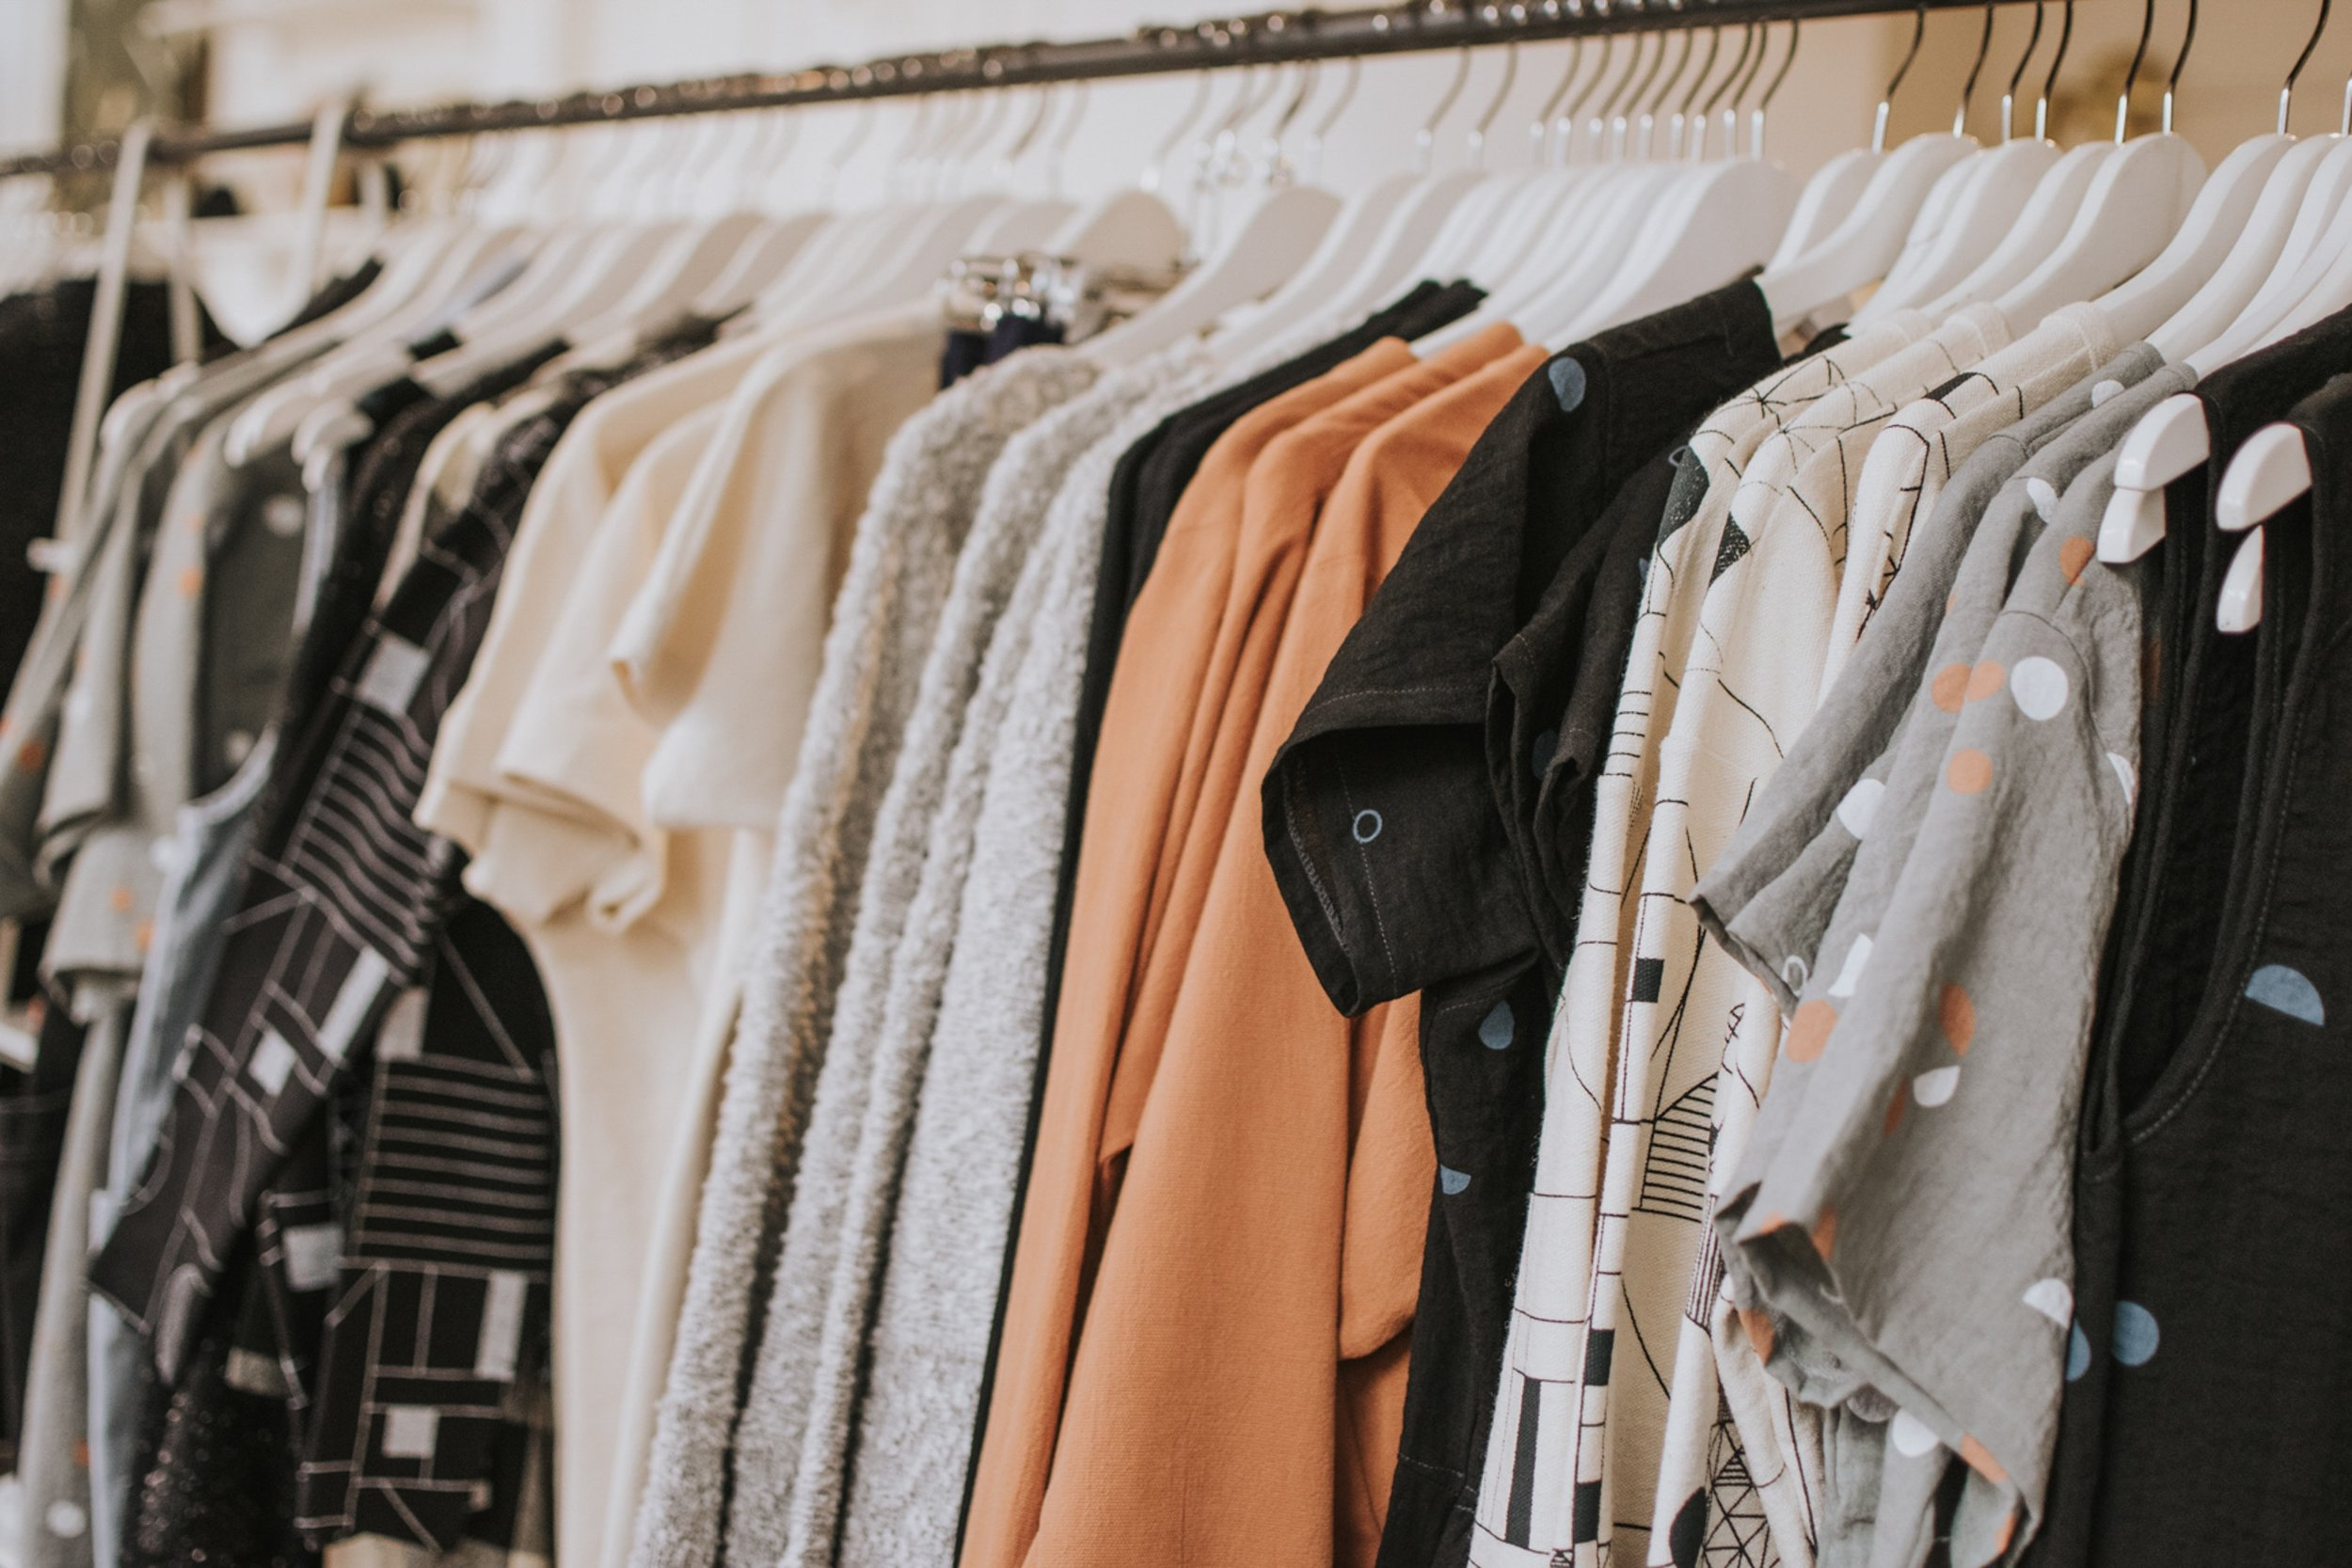 how to organise your wardrobe - To make you more sustainable